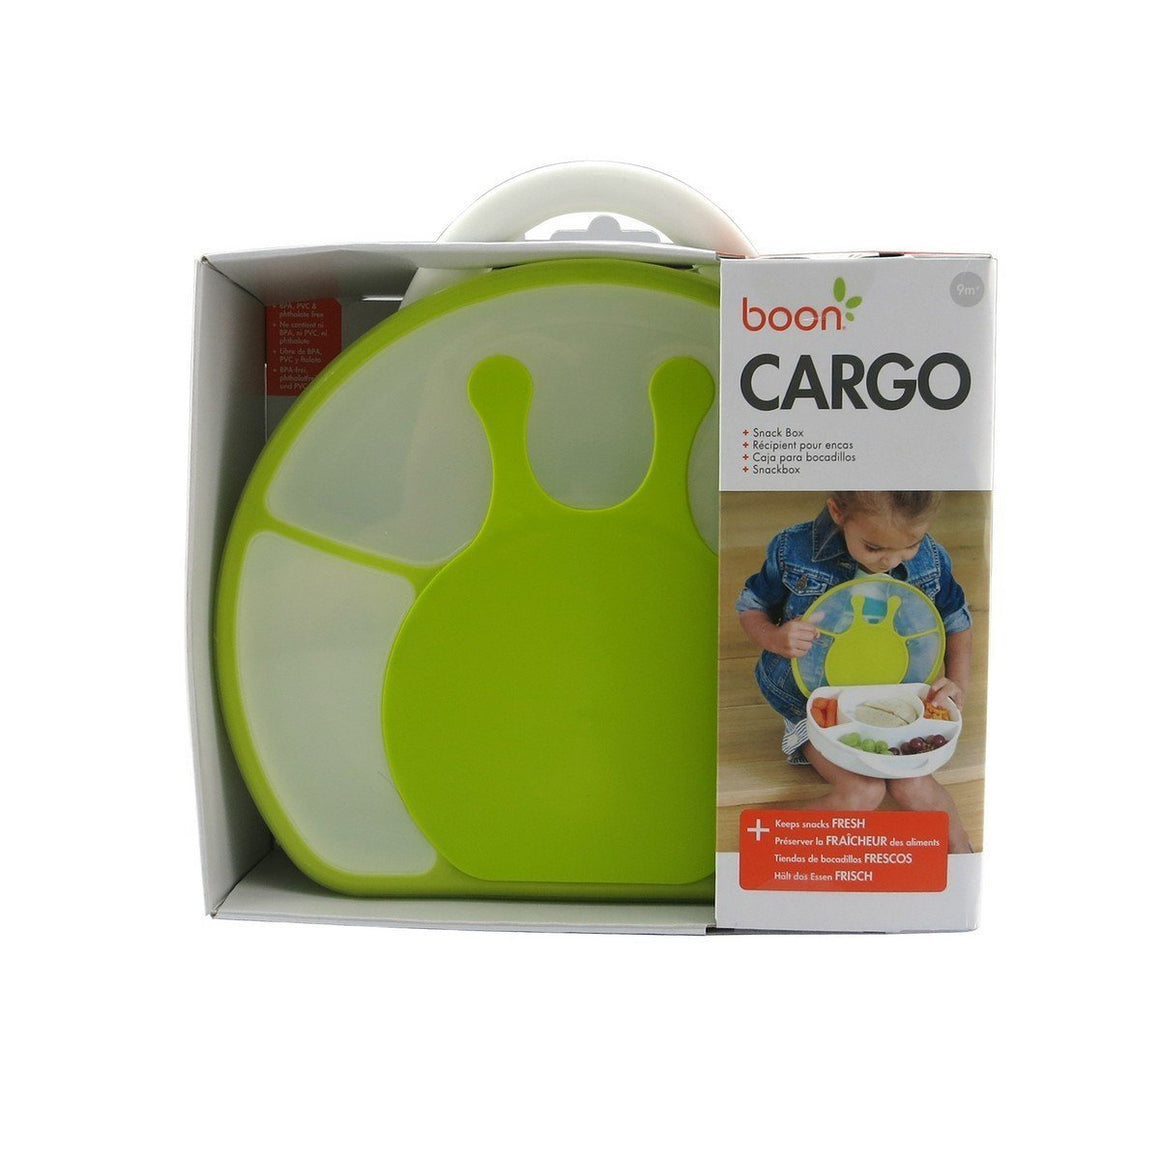 Boon Baby Care Boon Cargo Snack Box